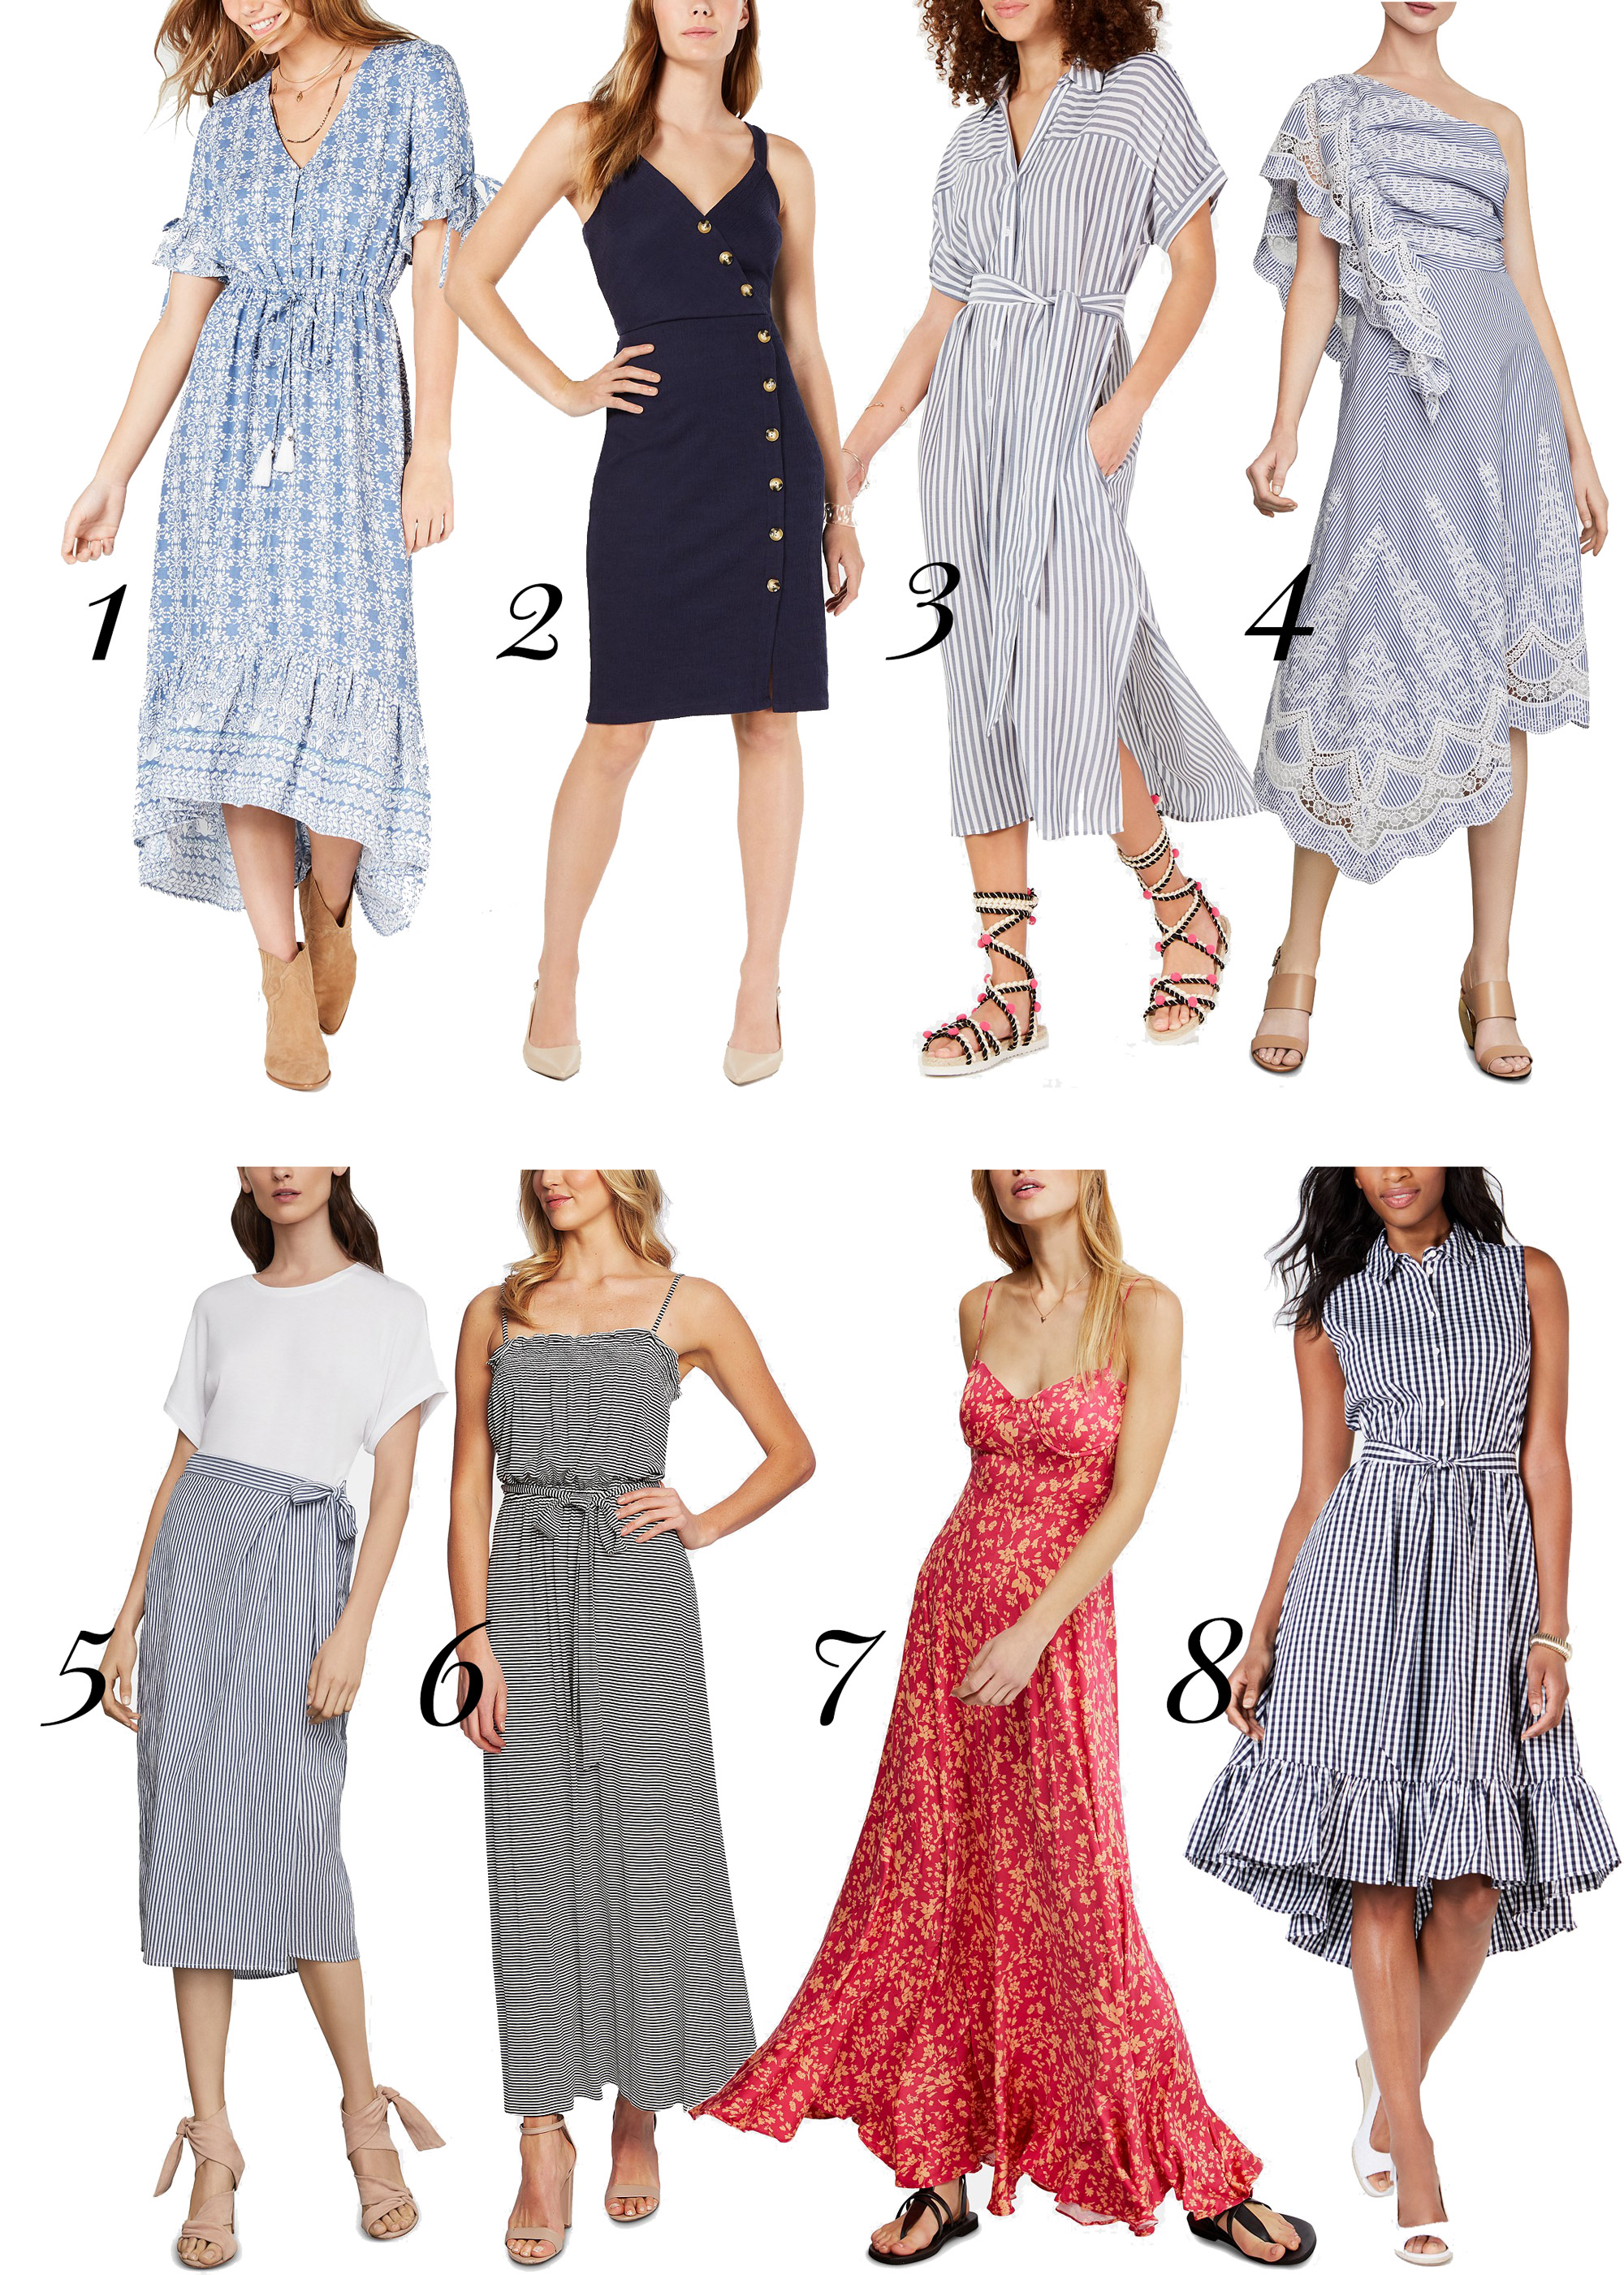 Macy's summer dresses 2019 on sale